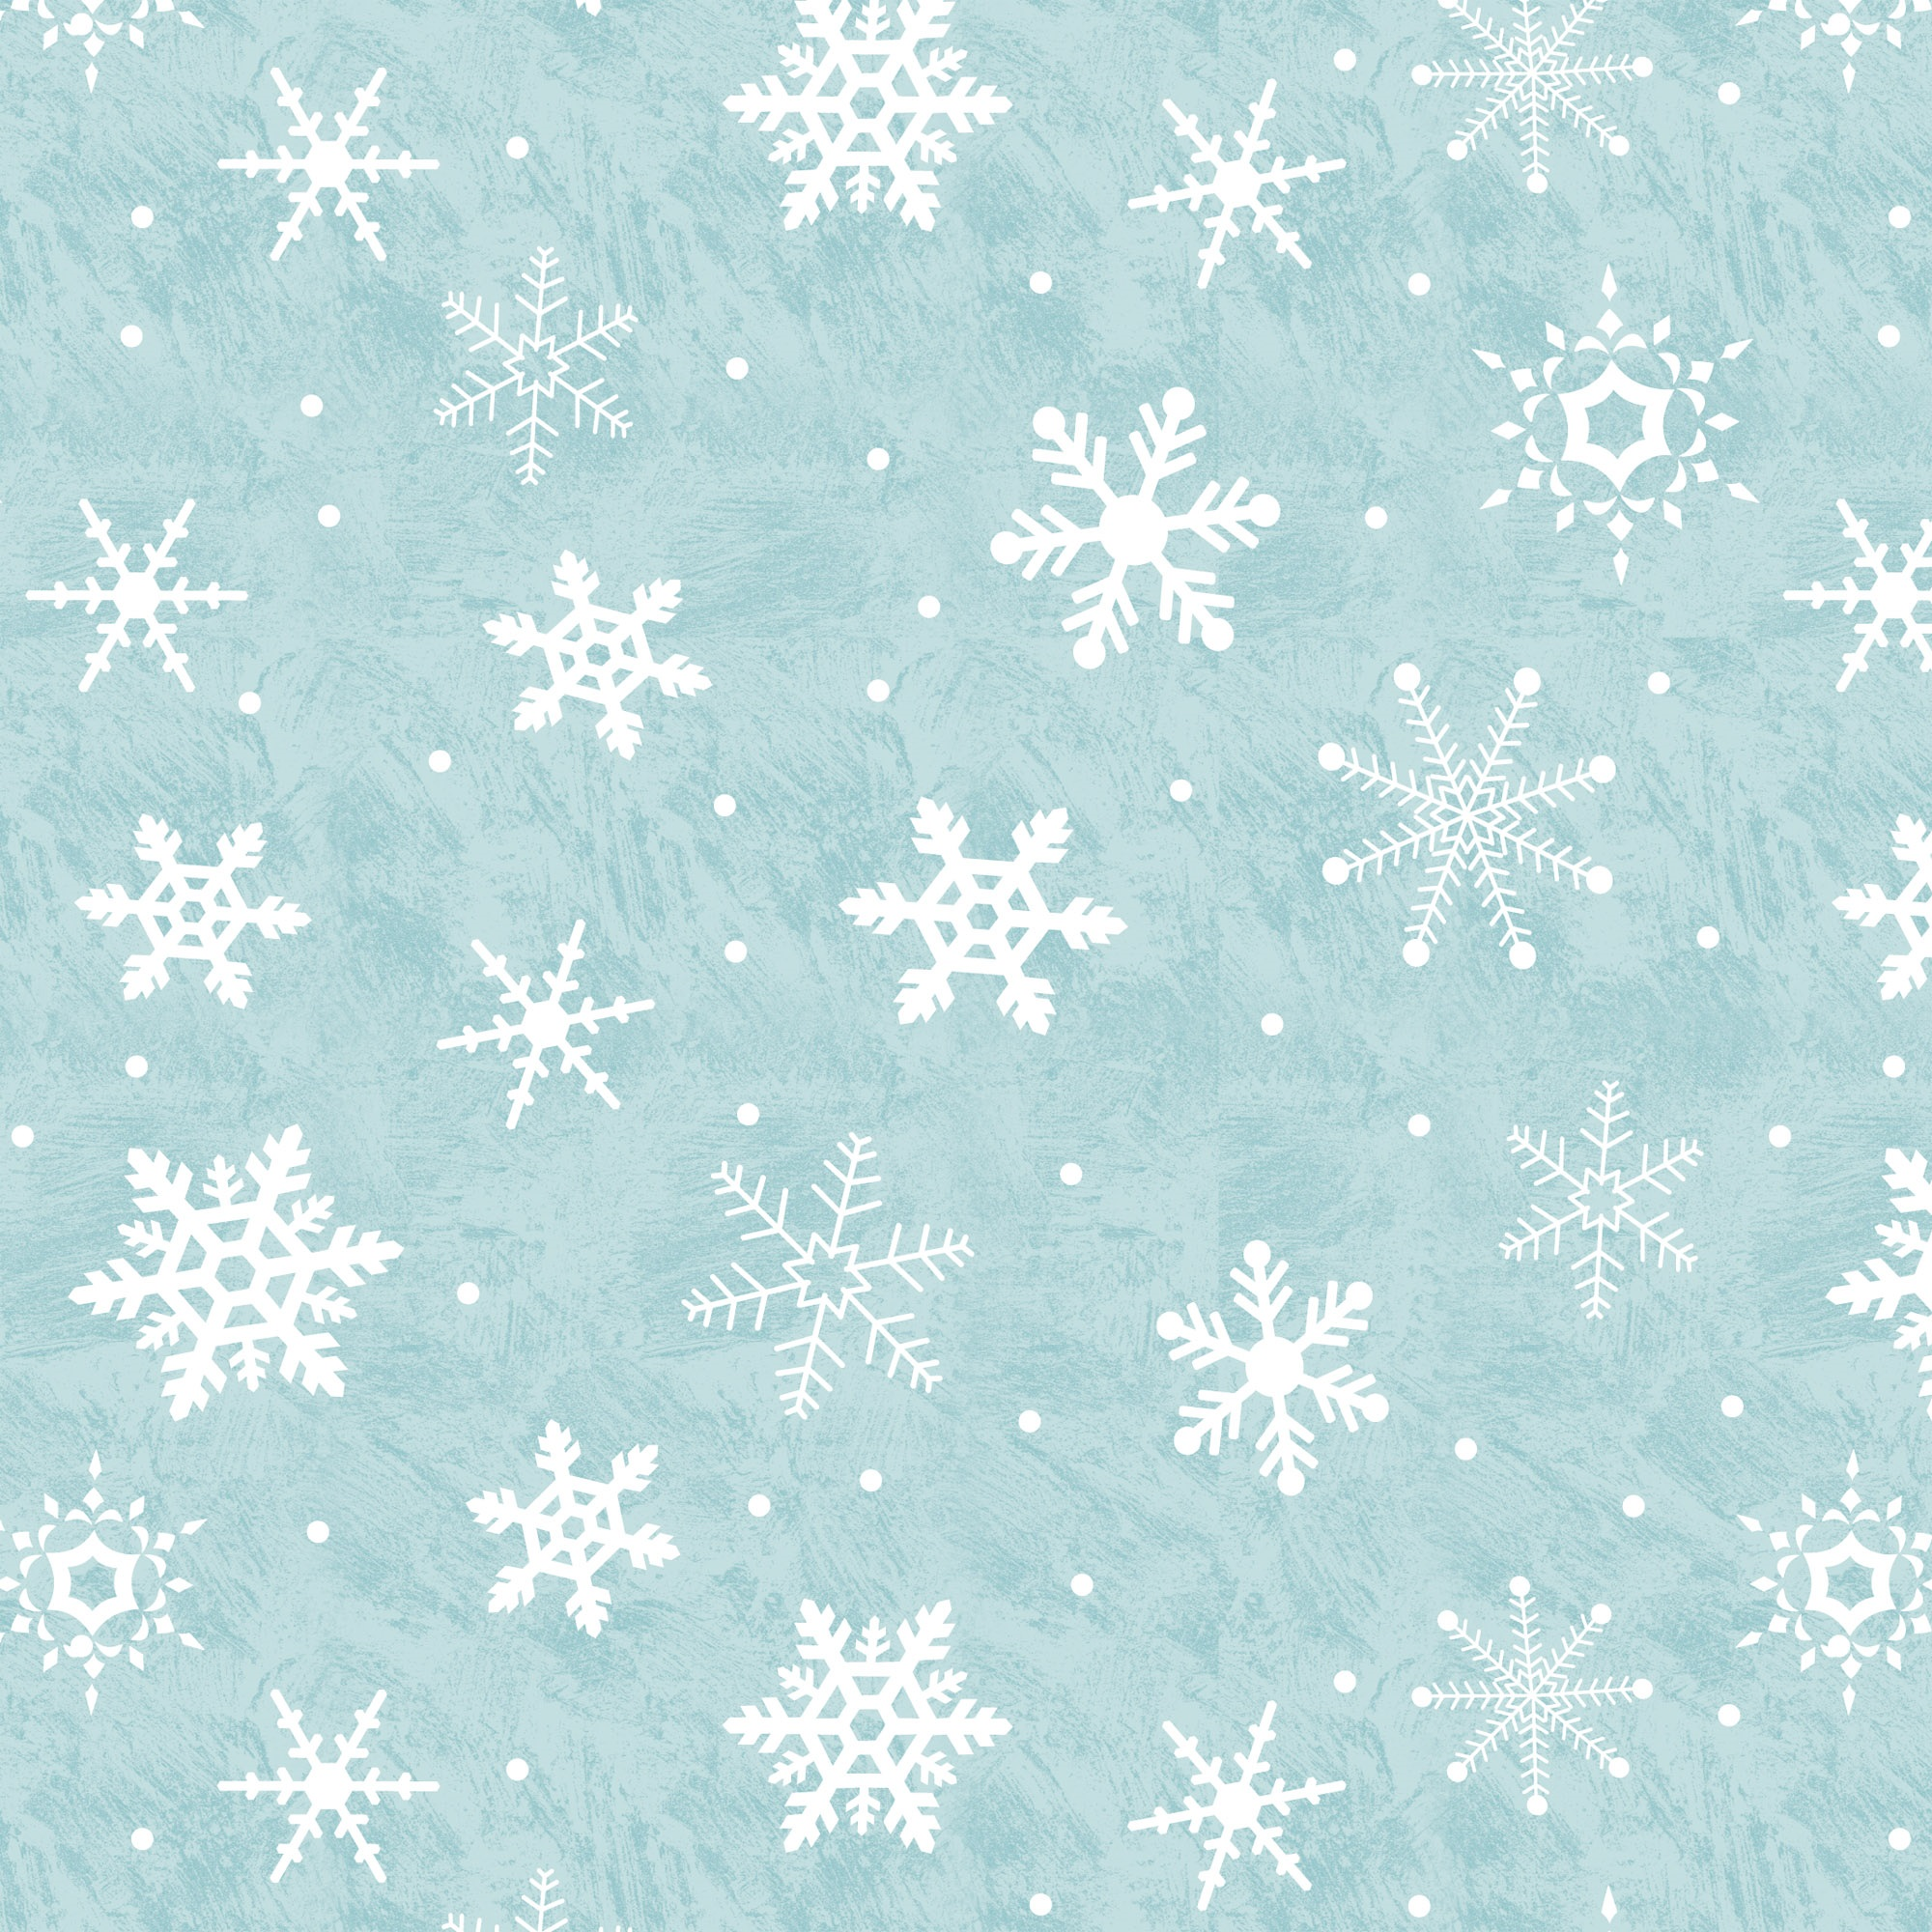 DAVID TEXTILES WINTER BIRDIES SNOWFLAKE 1 YD. CUT COTTON FABRIC